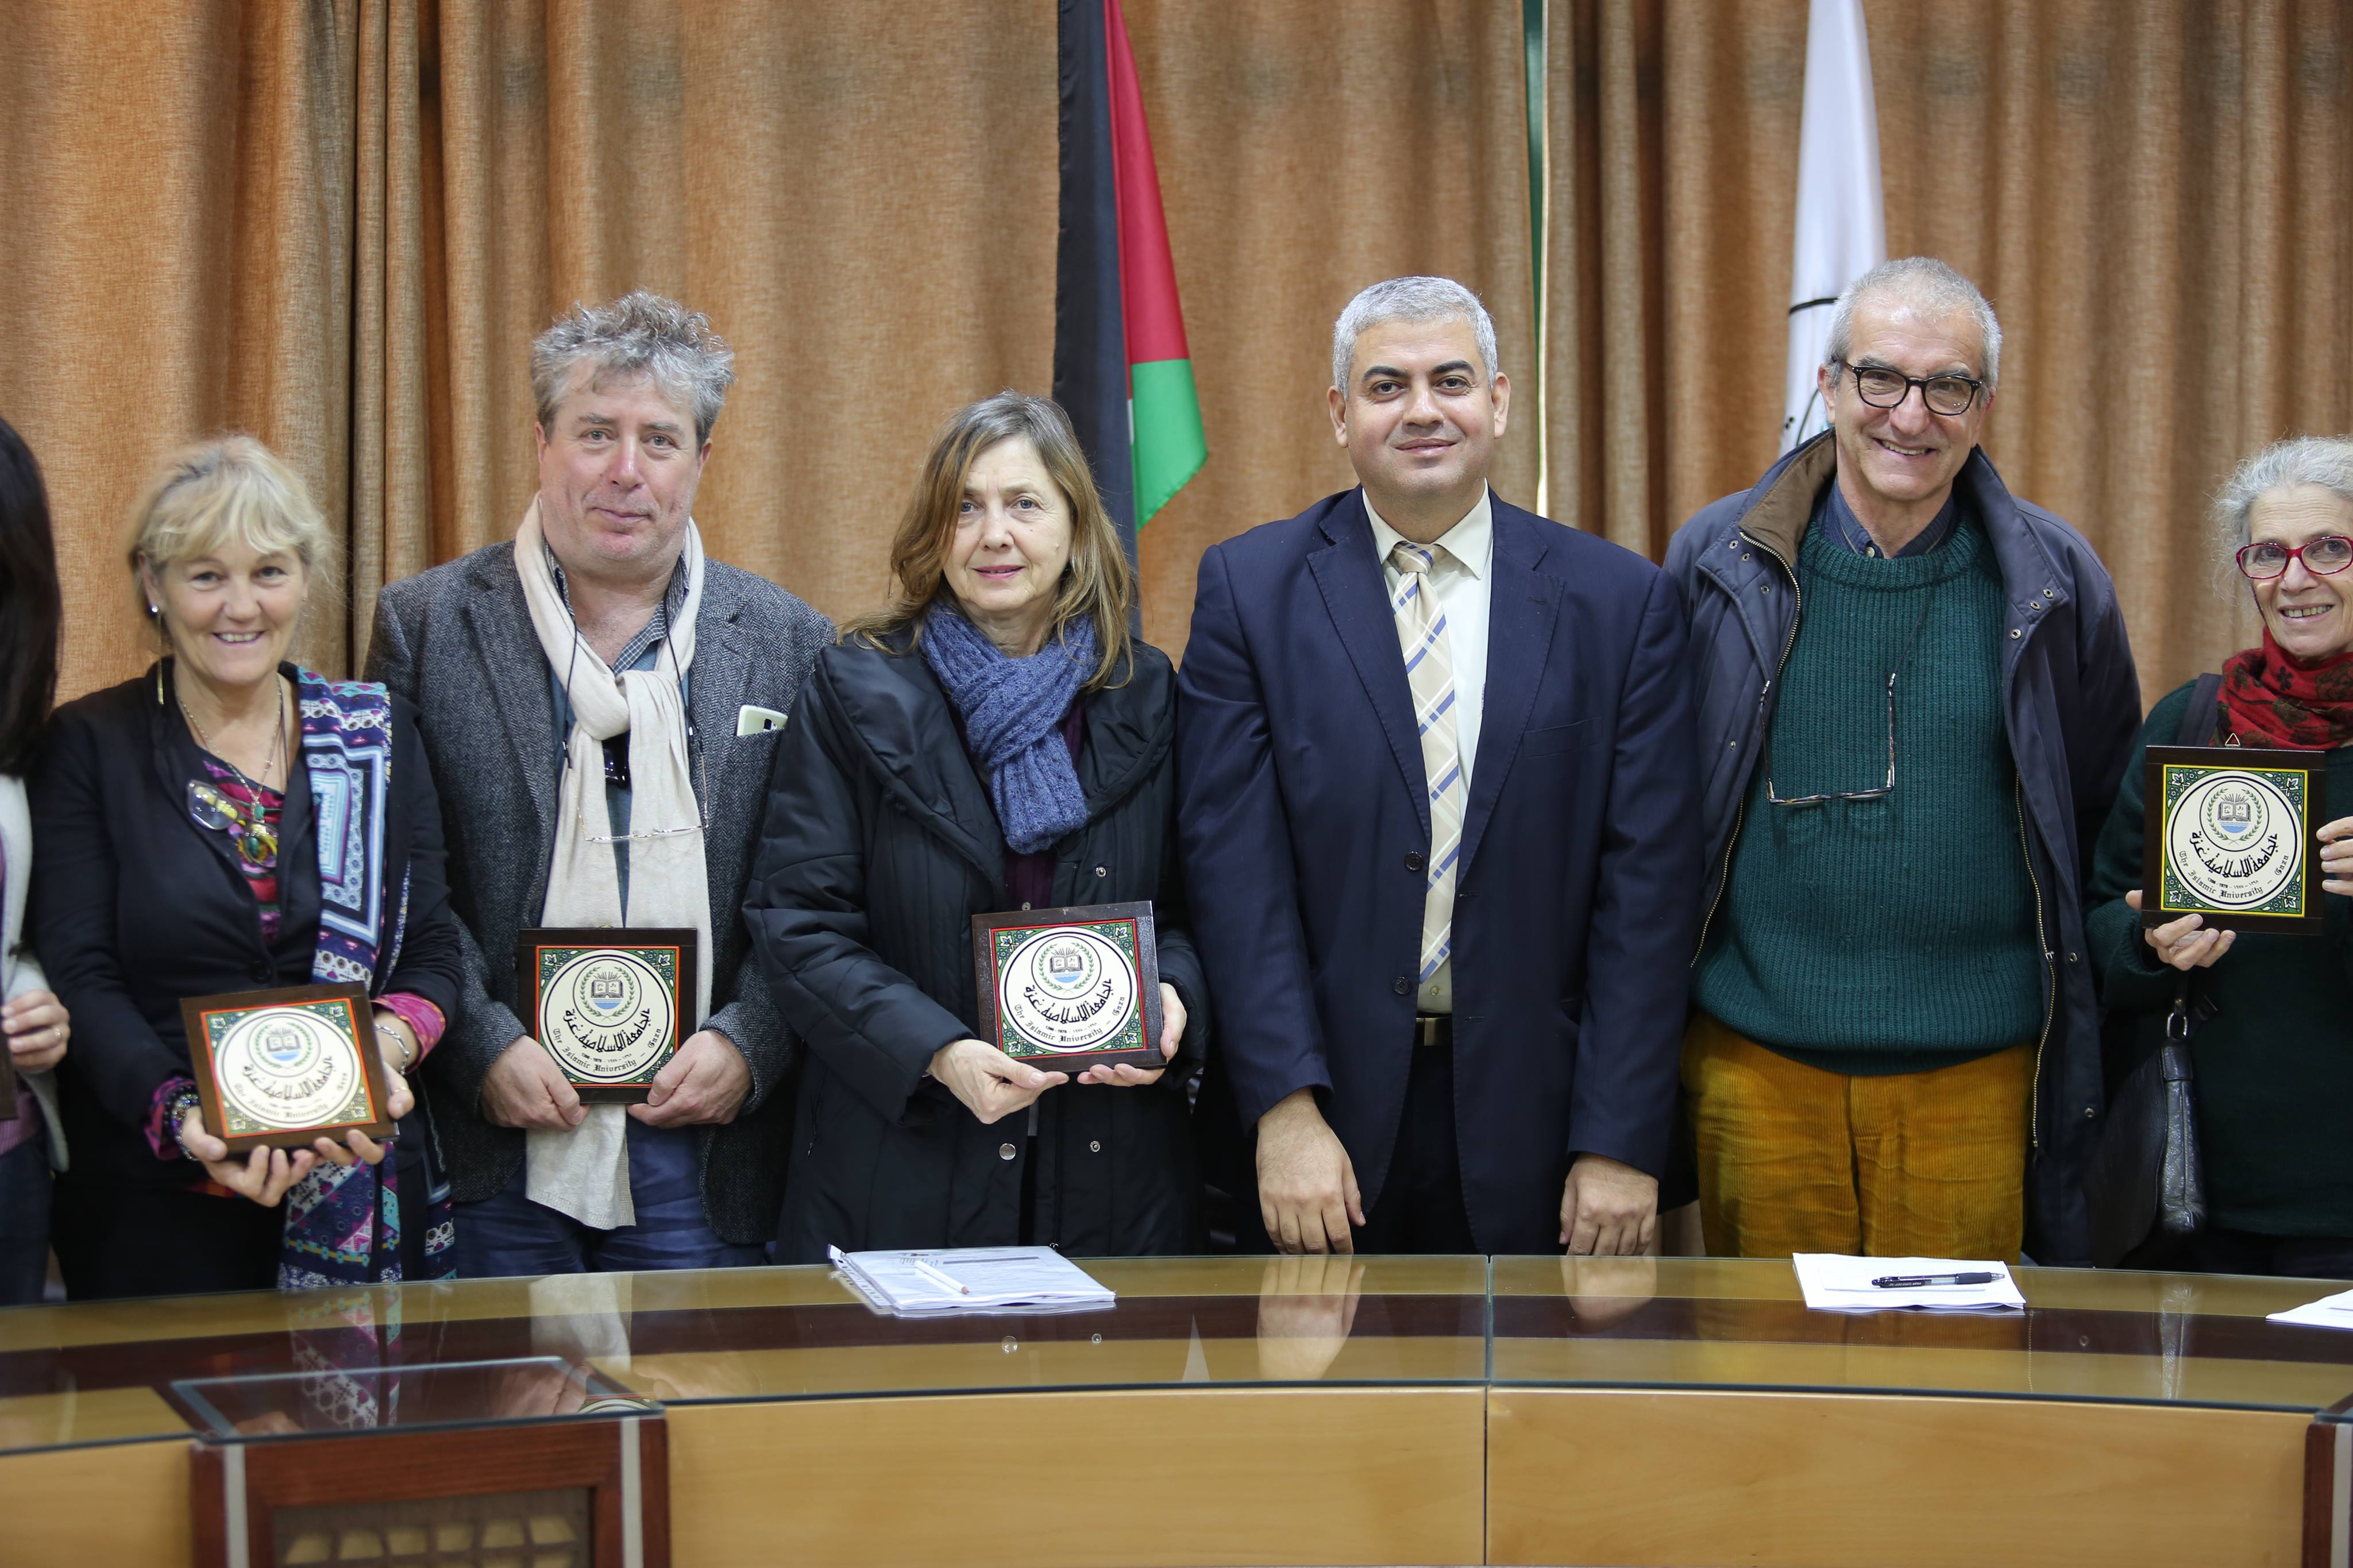 Academic Delegation From Siena University Visits IUG